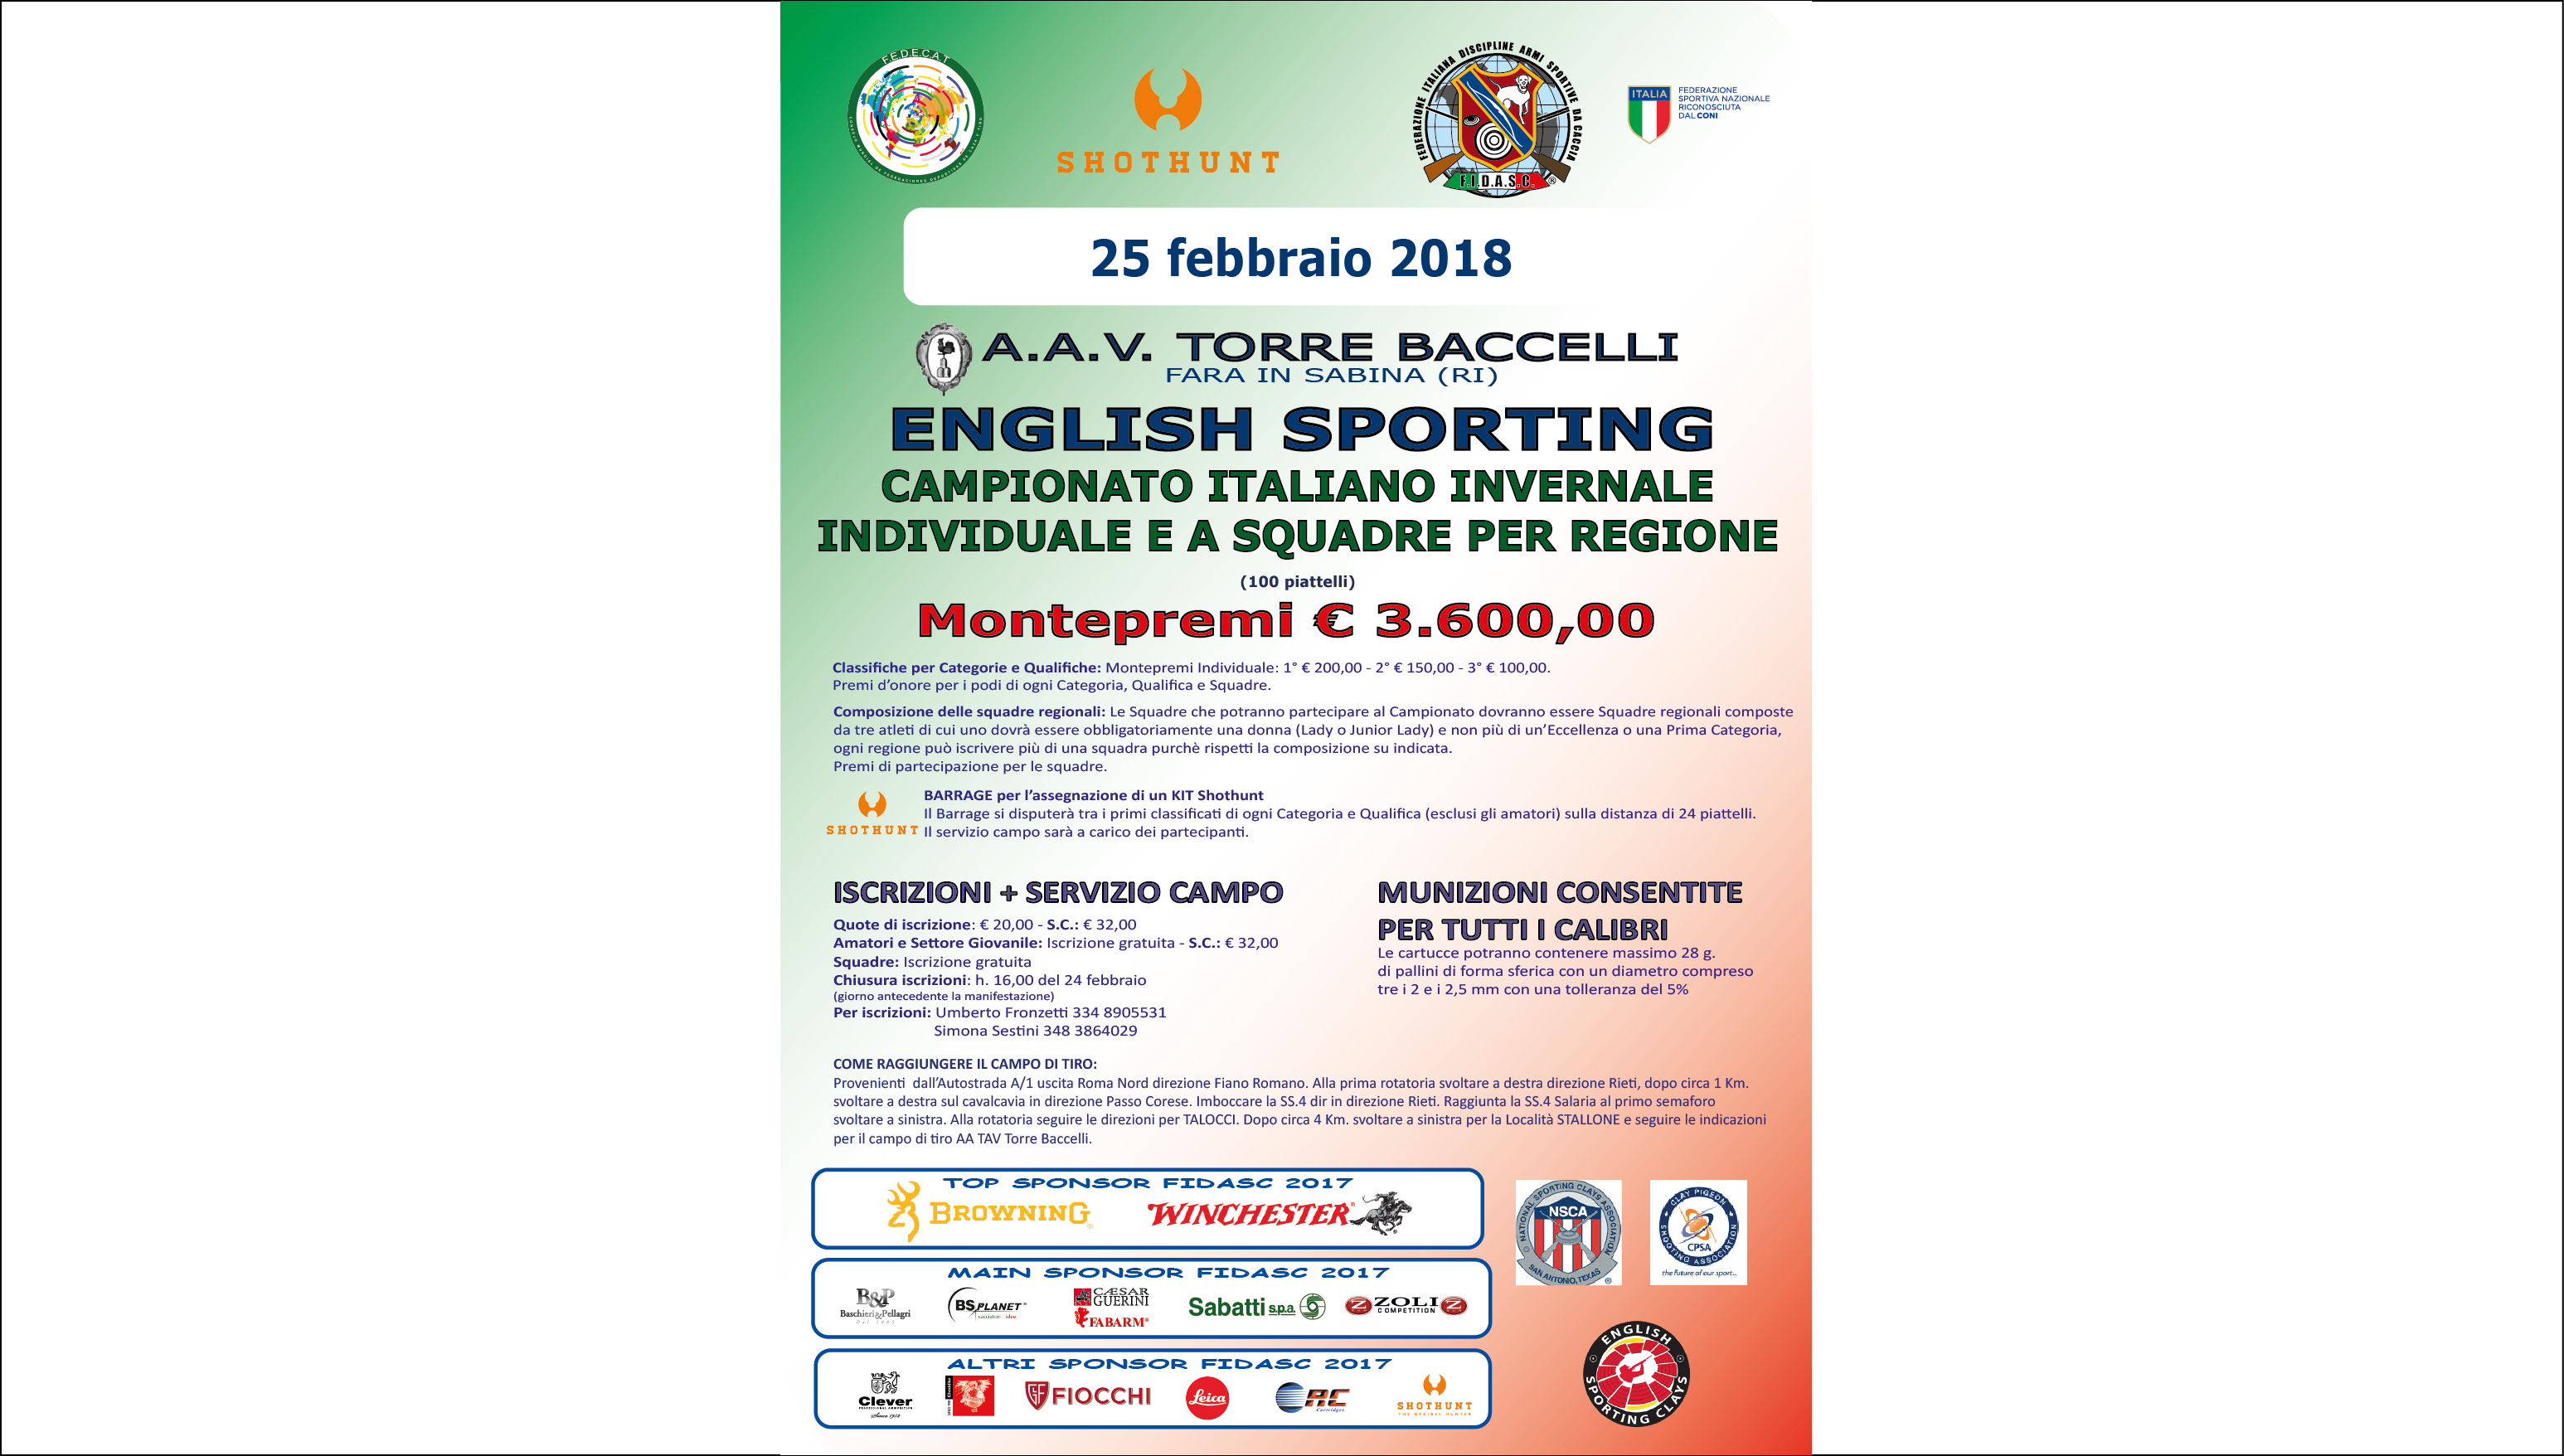 English Sporting - Campionato Italiano Invernale